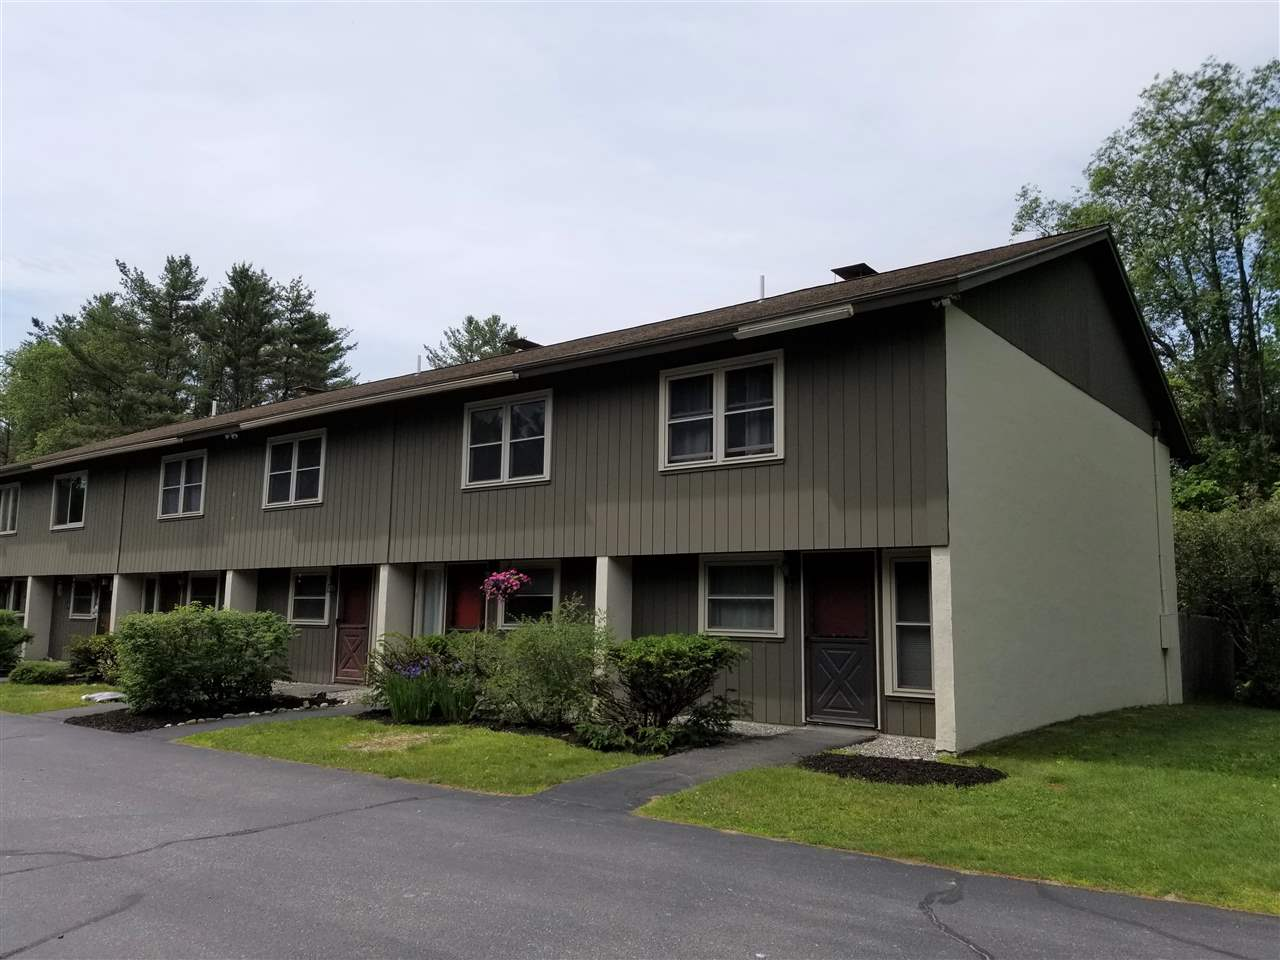 MLS 4760235: 54 Westgate Road, Plainfield NH